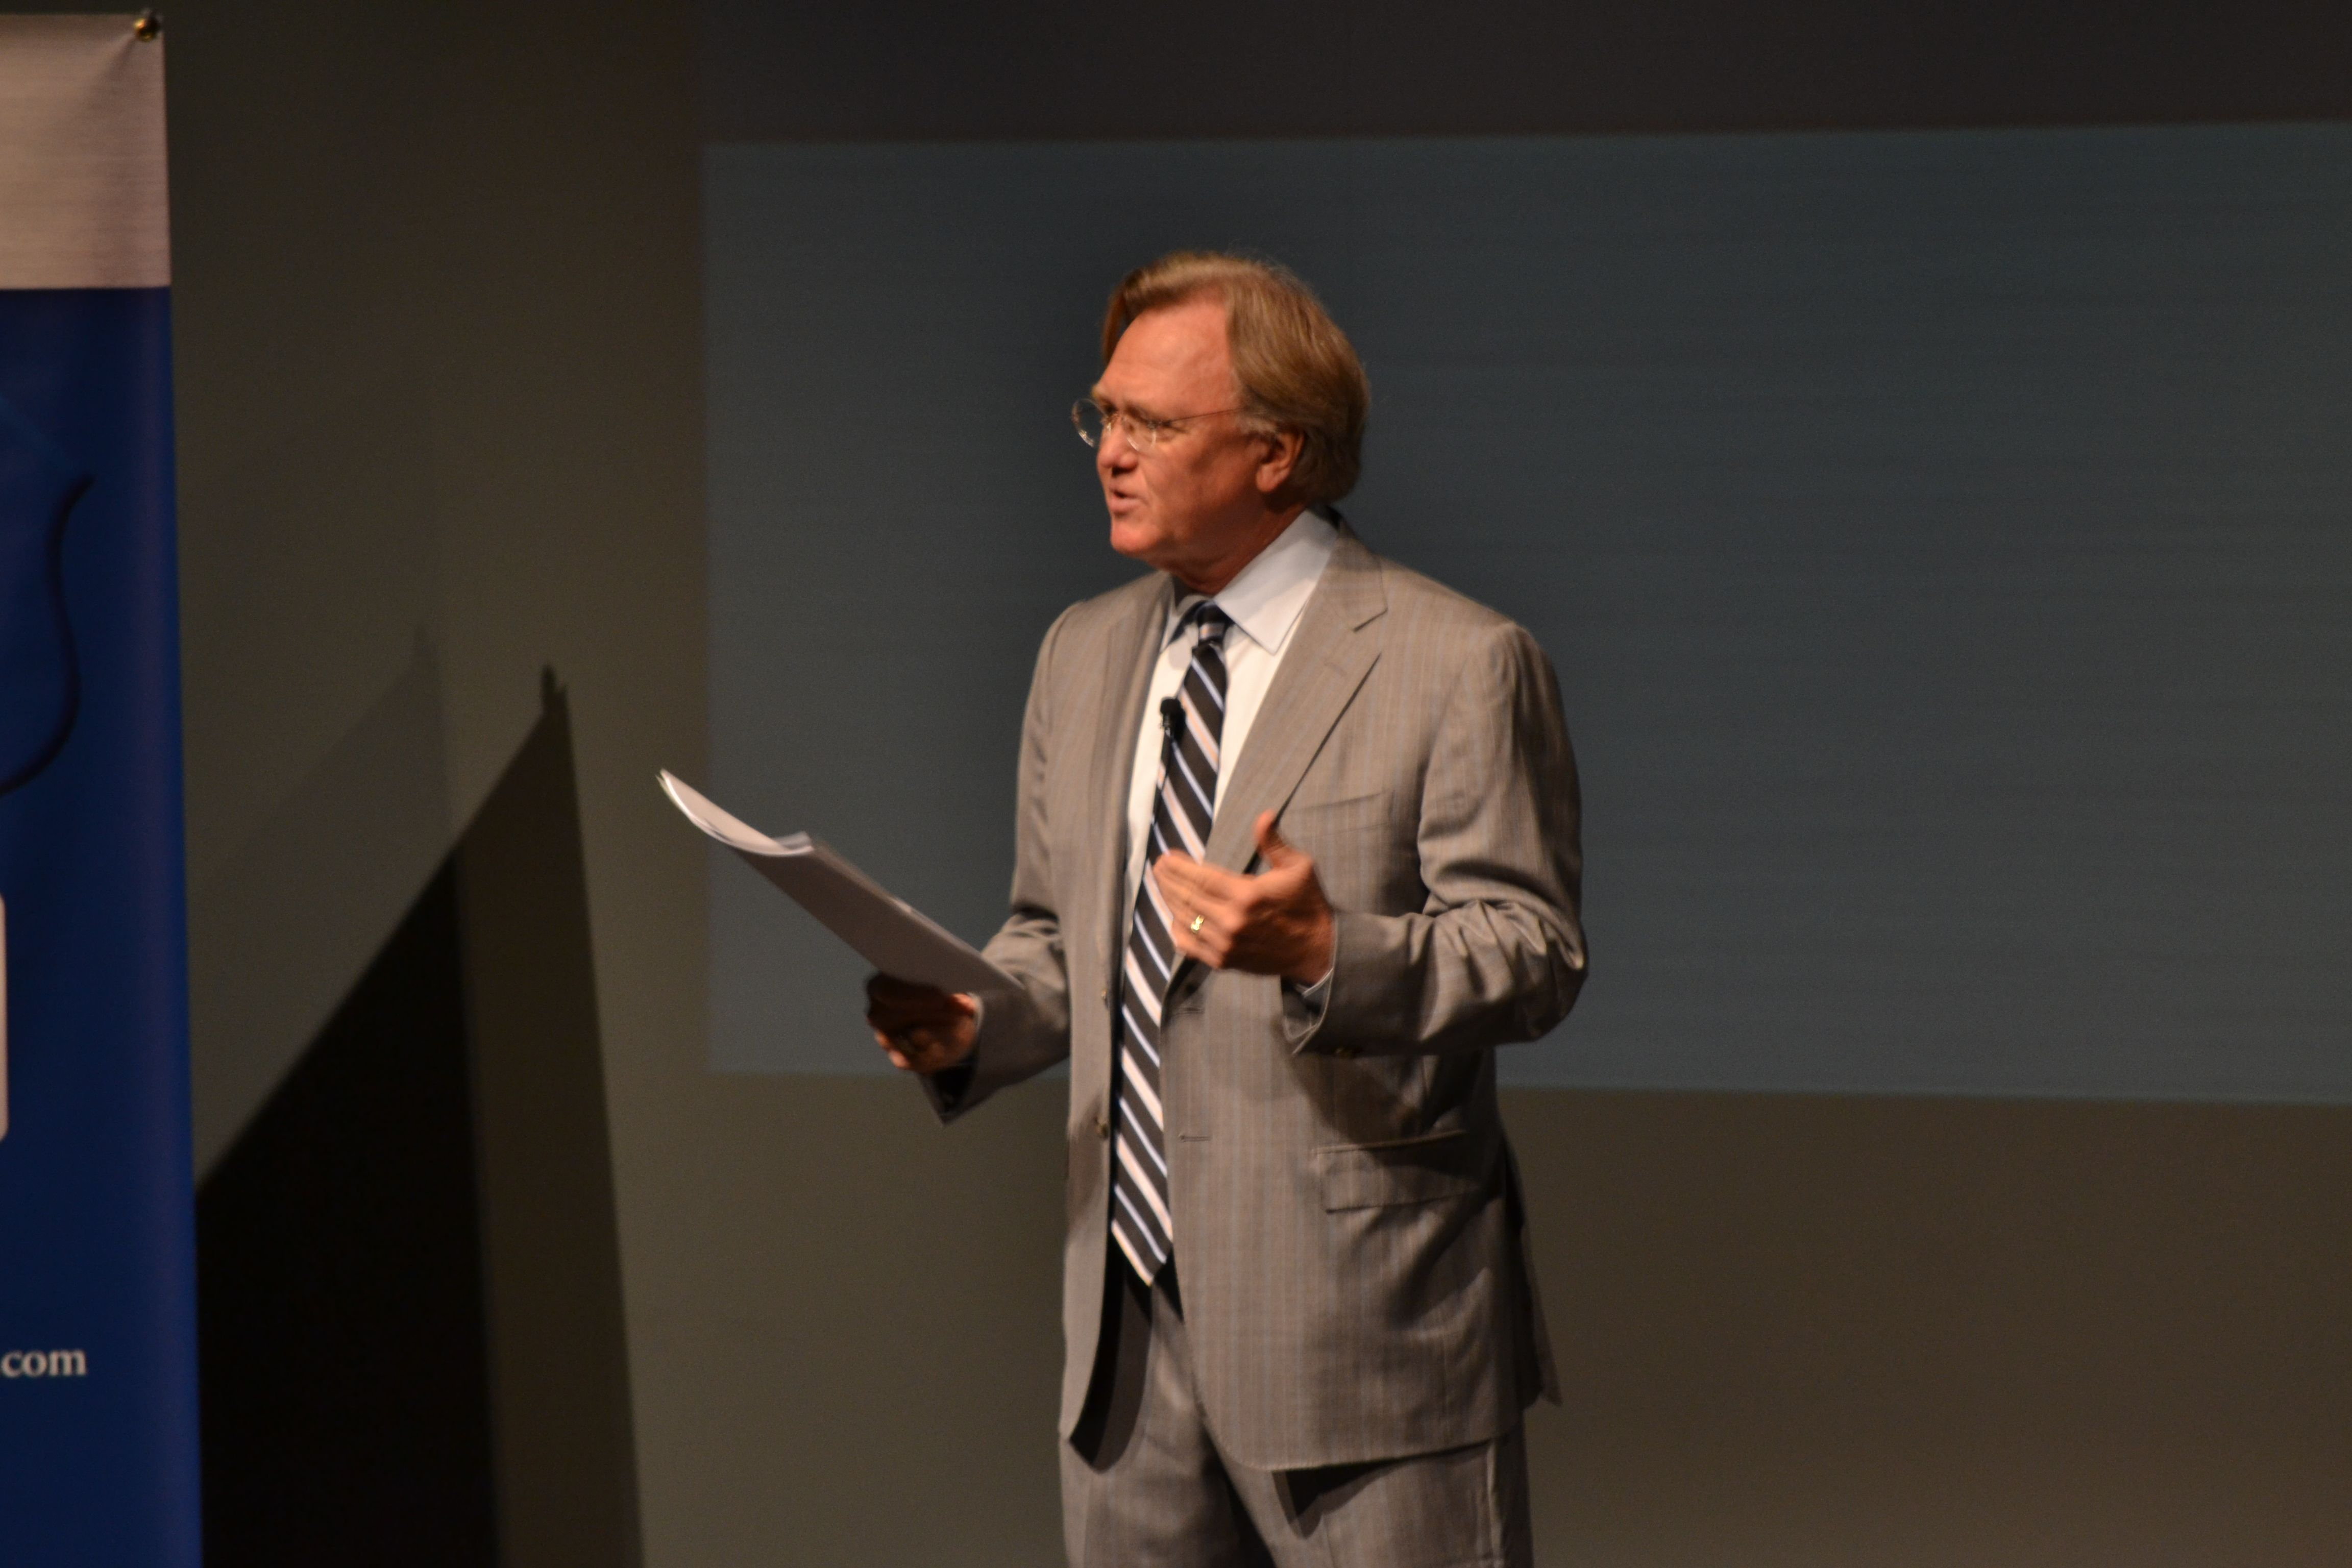 Rich Rector, Owner and President of Realty Executives Phoenix. June 19 Executive Event at Tempe Center for the Arts.